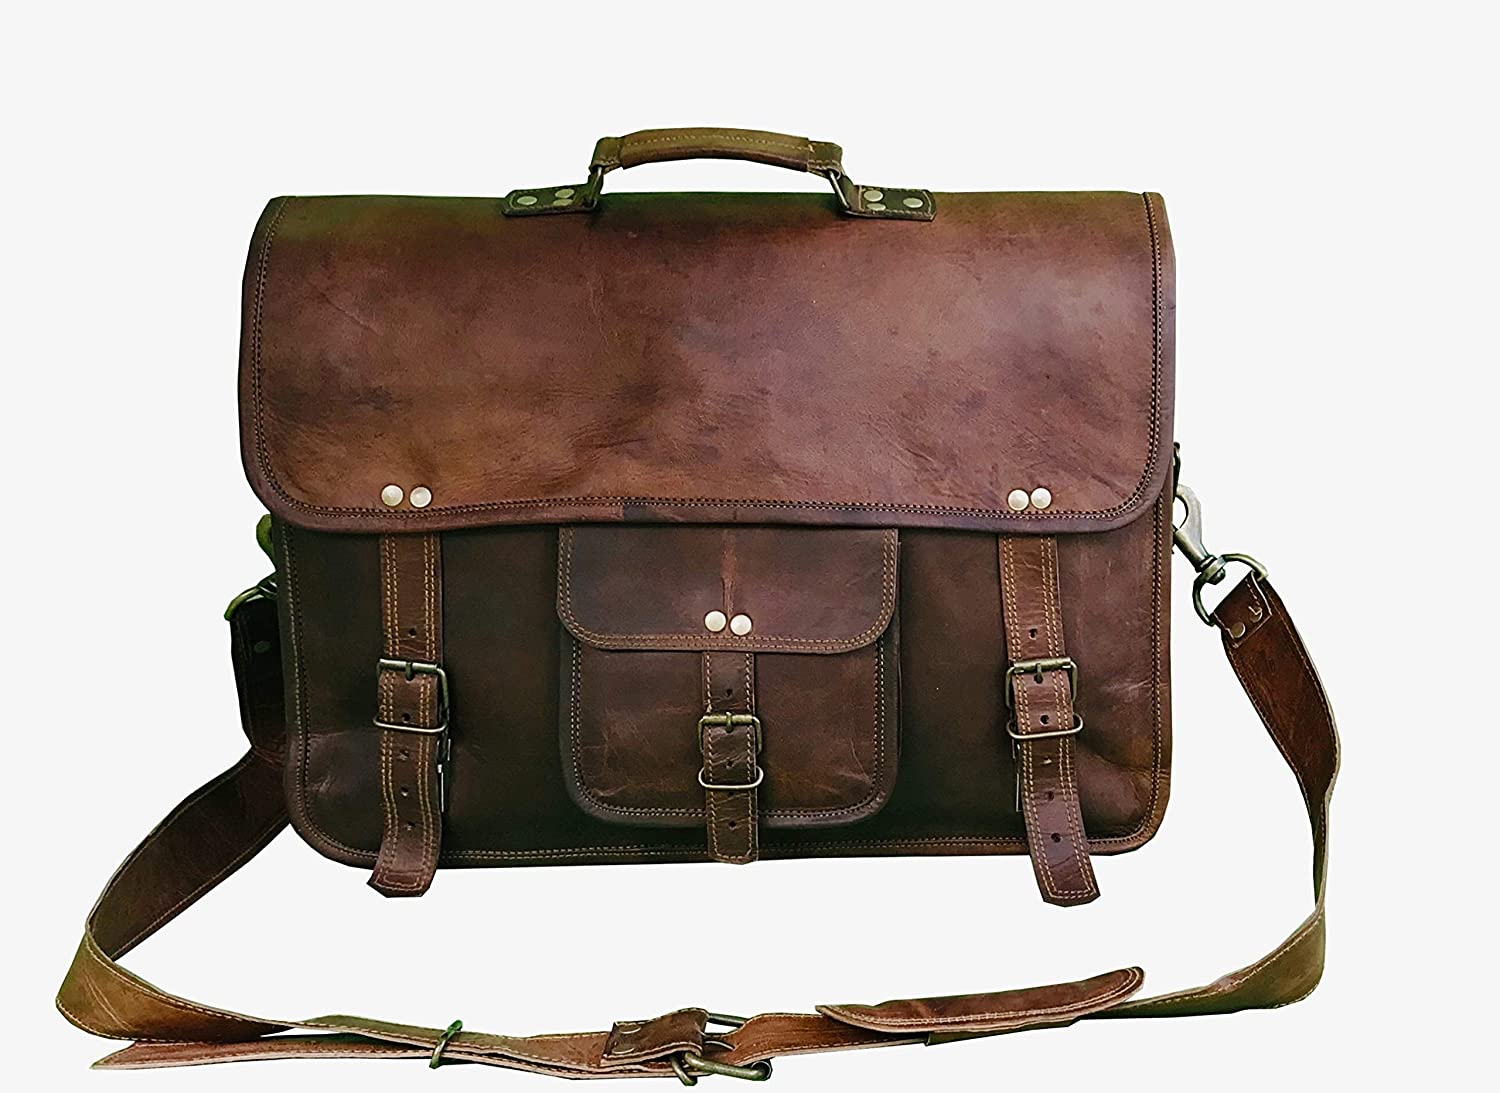 18 Inch Leather Messenger BagVintage Handmade for BriefcaseLaptopBest Computer Satchel School